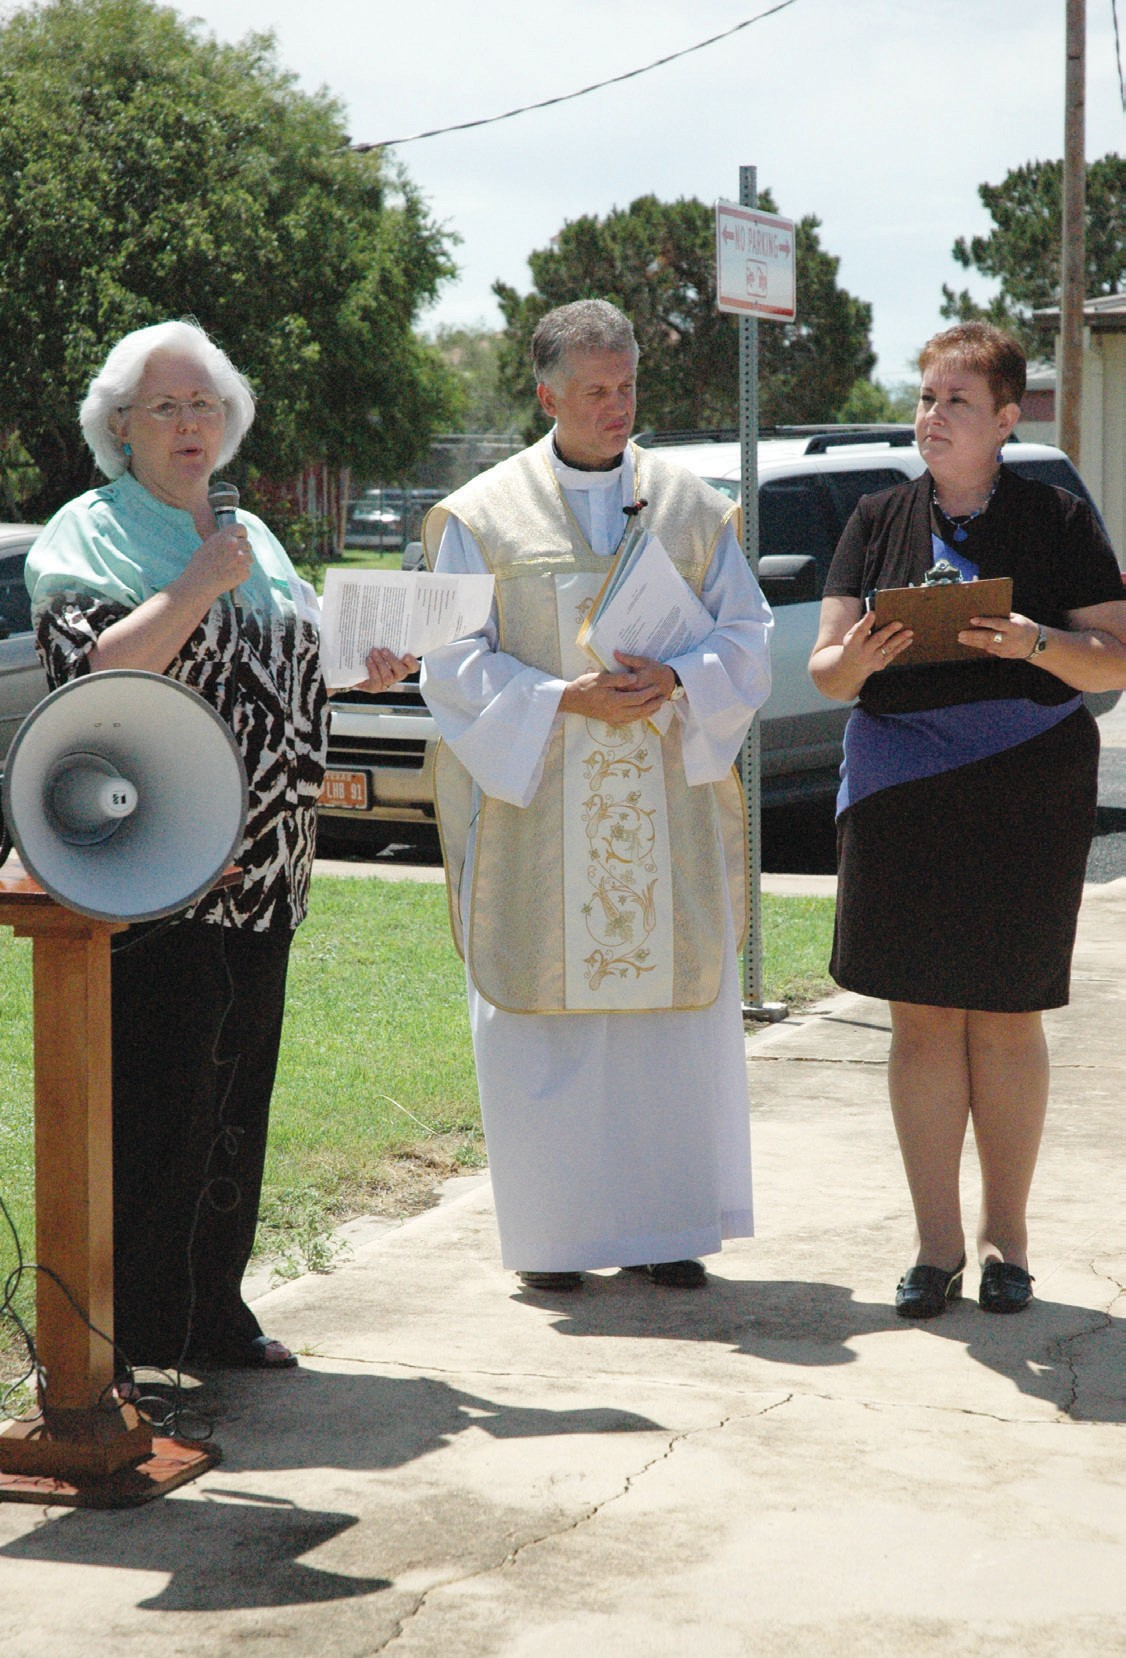 Barbara Westbrook of the Atascosa County Historical Commission addresses the crowd at St. Matthew's Catholic Church along with Father Kazimierz Oleksy and Debbie Netardus.